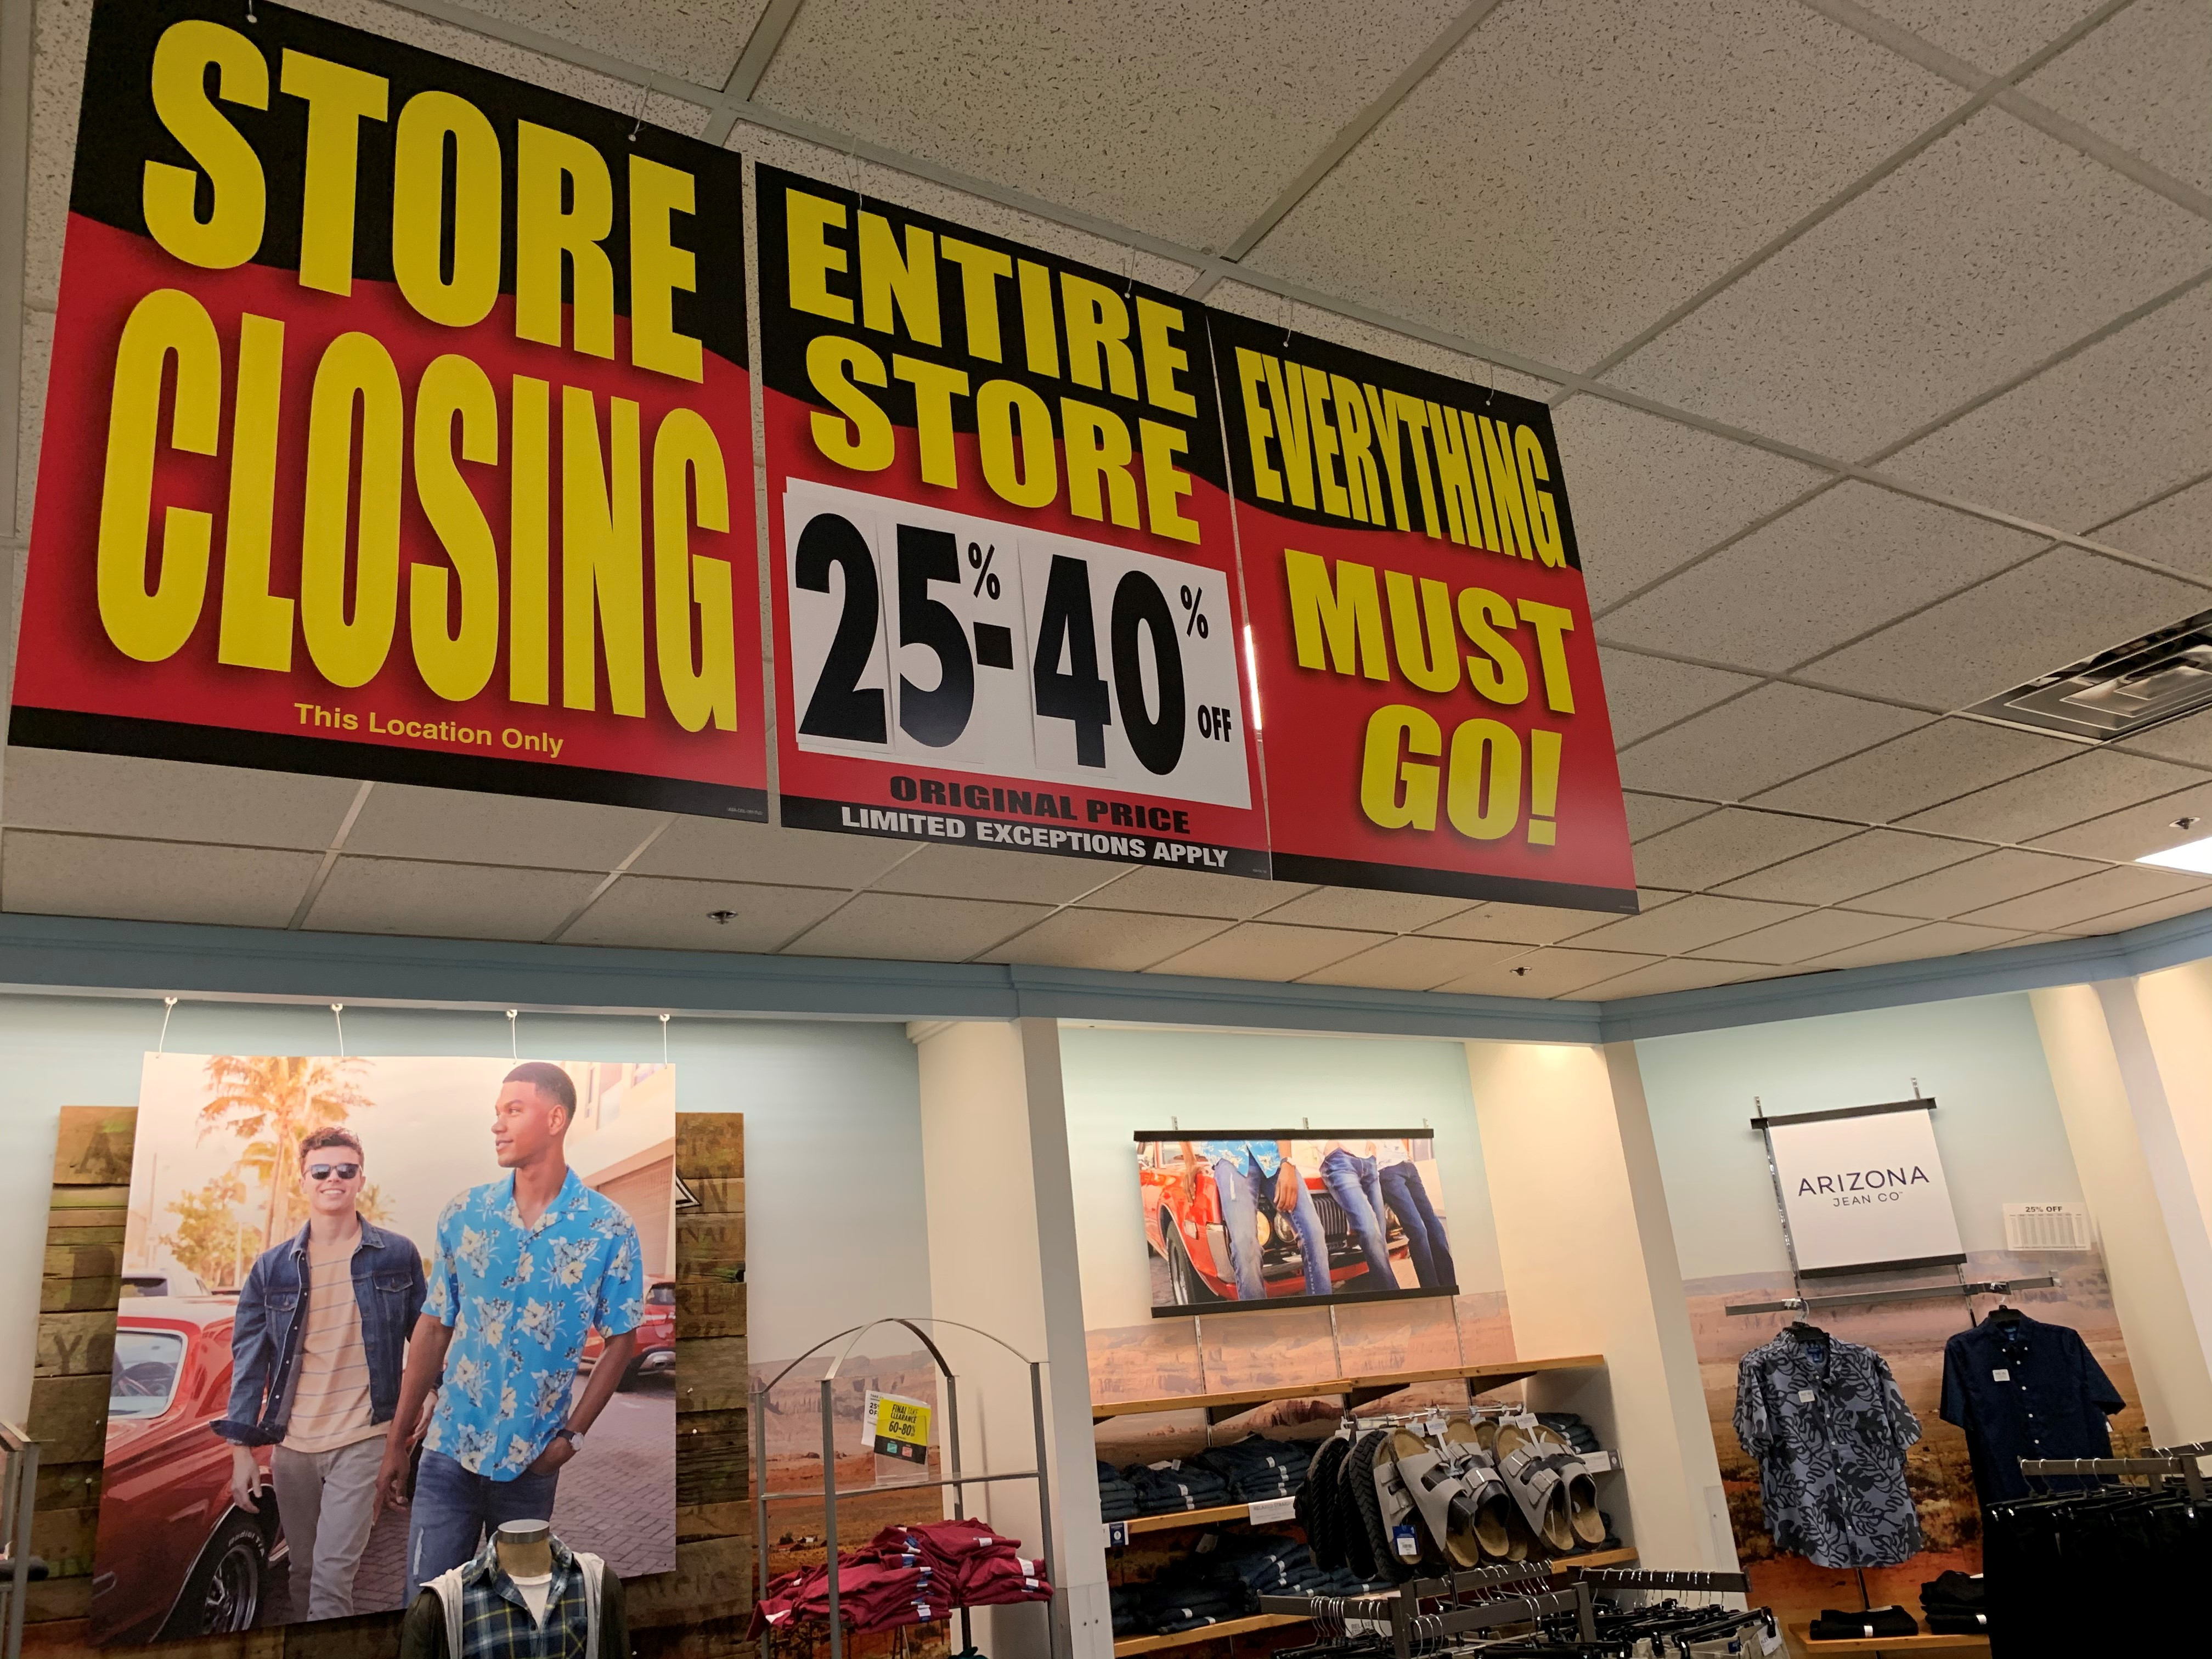 Jcpenney Gap Victoria S Secret And More Than 40 Other Retailers To Close Thousands Of Stores In 2020 Pennlive Com